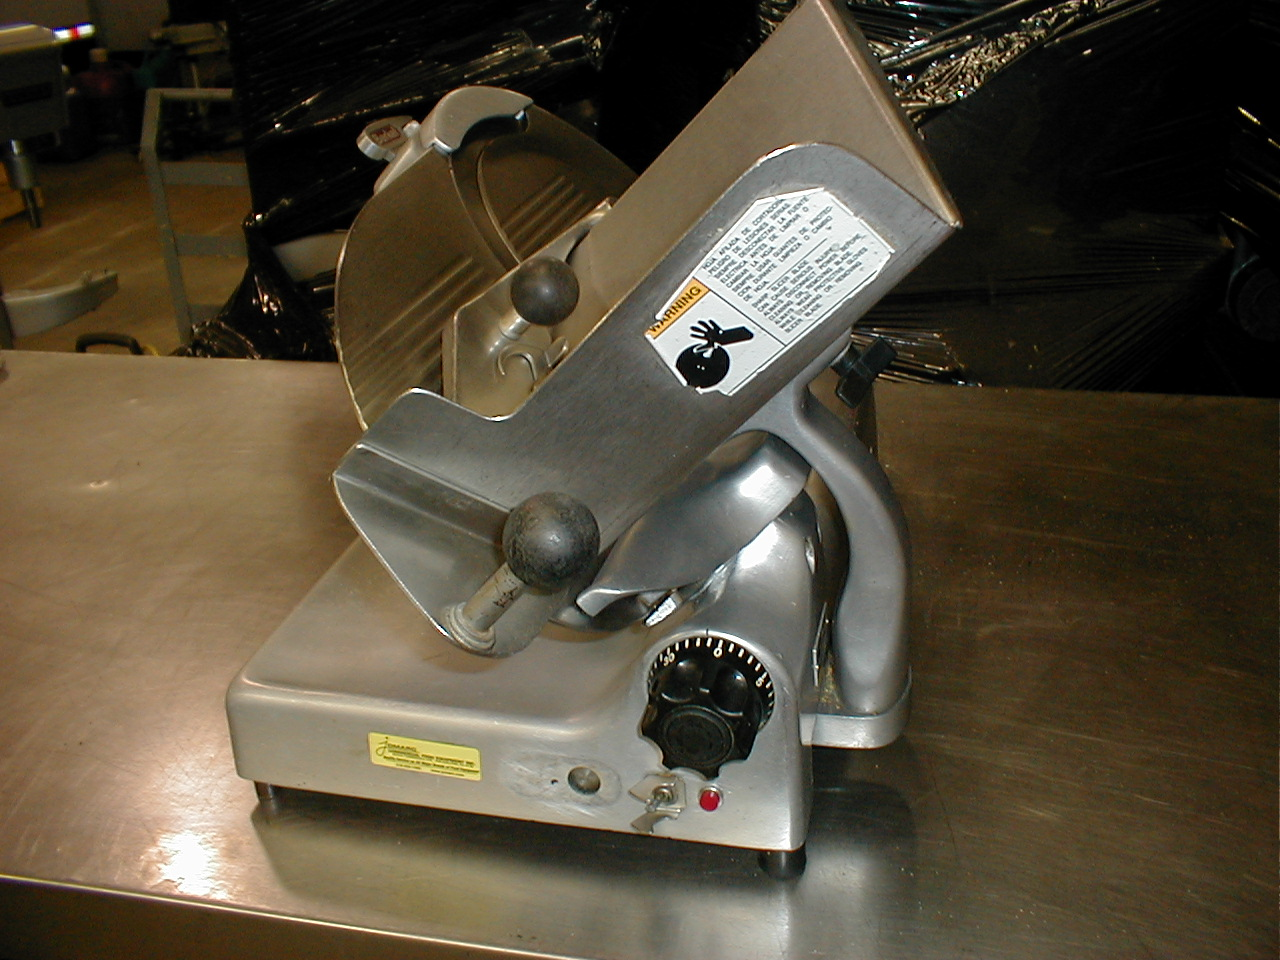 Used Berkel slicer model 807 12 inch blade. Freight charge